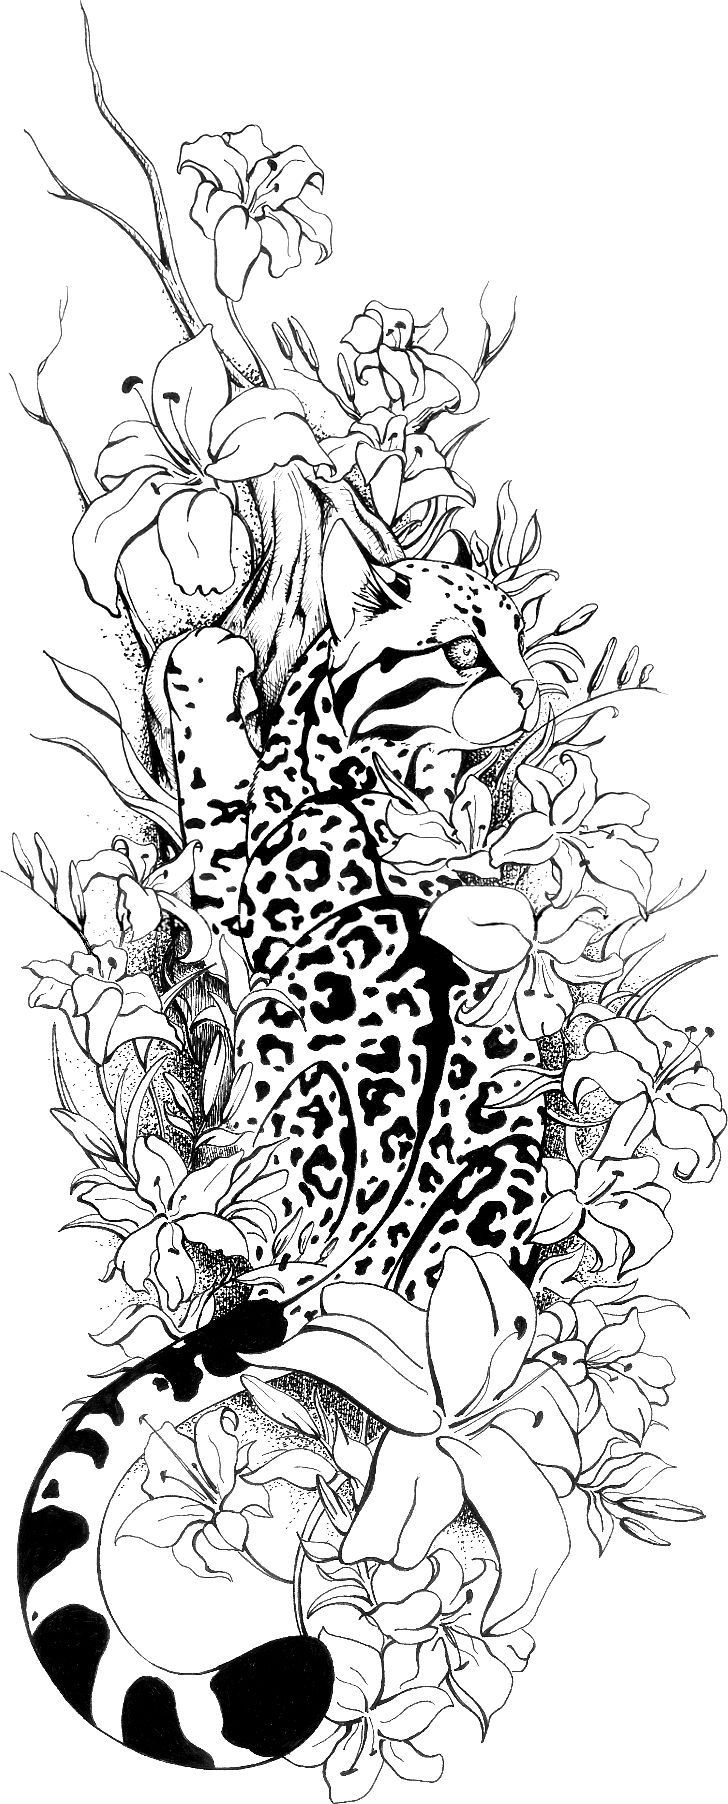 Best ideas about Lynx Coloring Sheets For Girls . Save or Pin 846 best images about Coloring Pages on Pinterest Now.